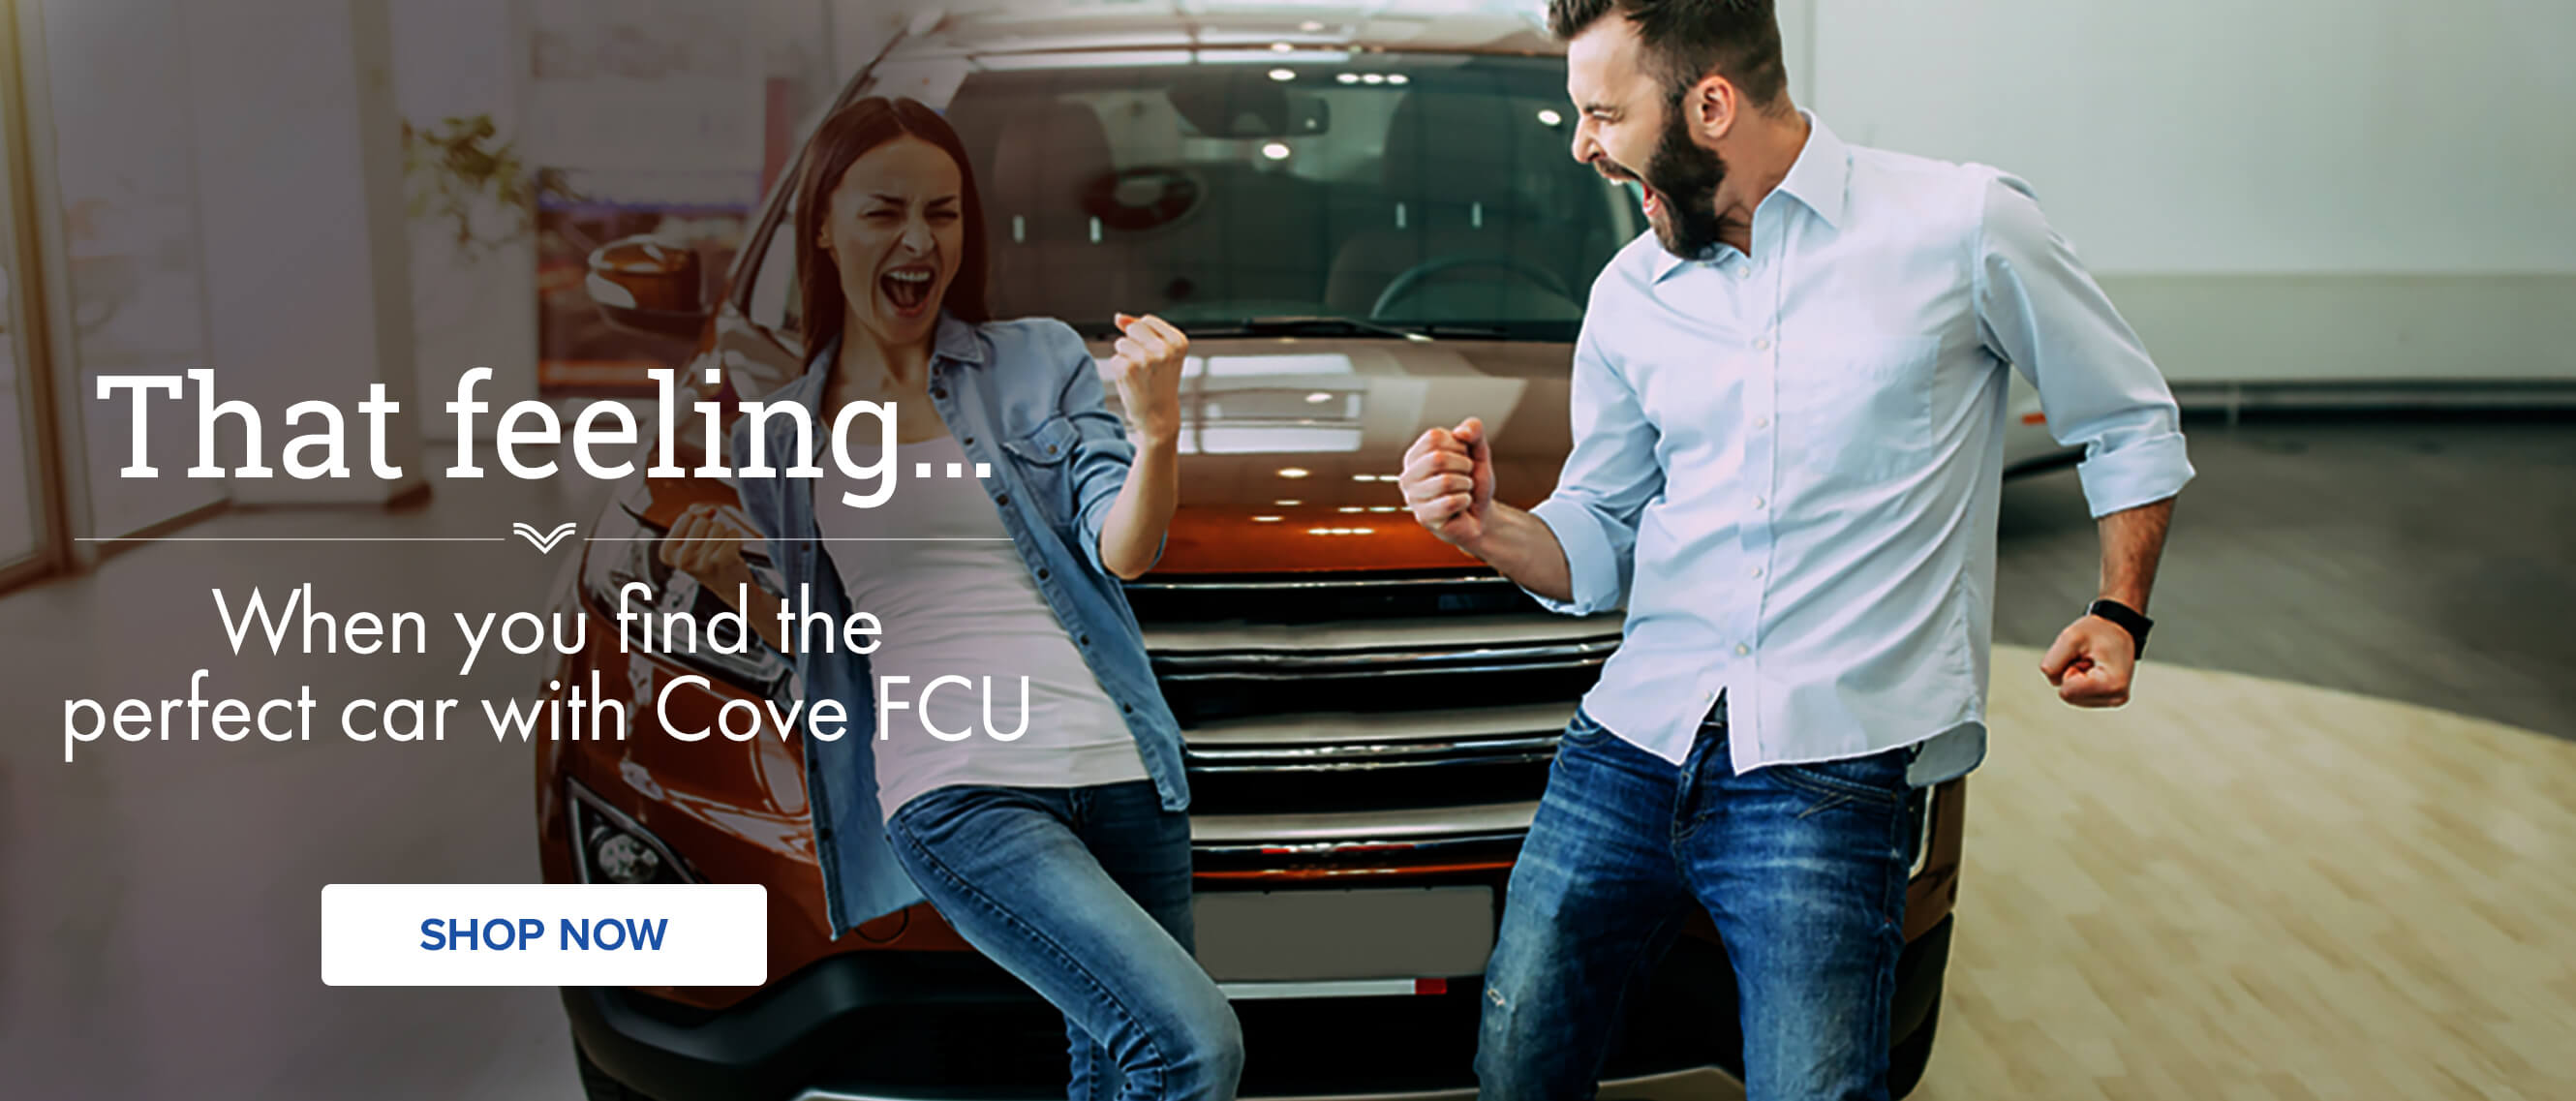 That feeling When you find the perfect car with Cove FCU